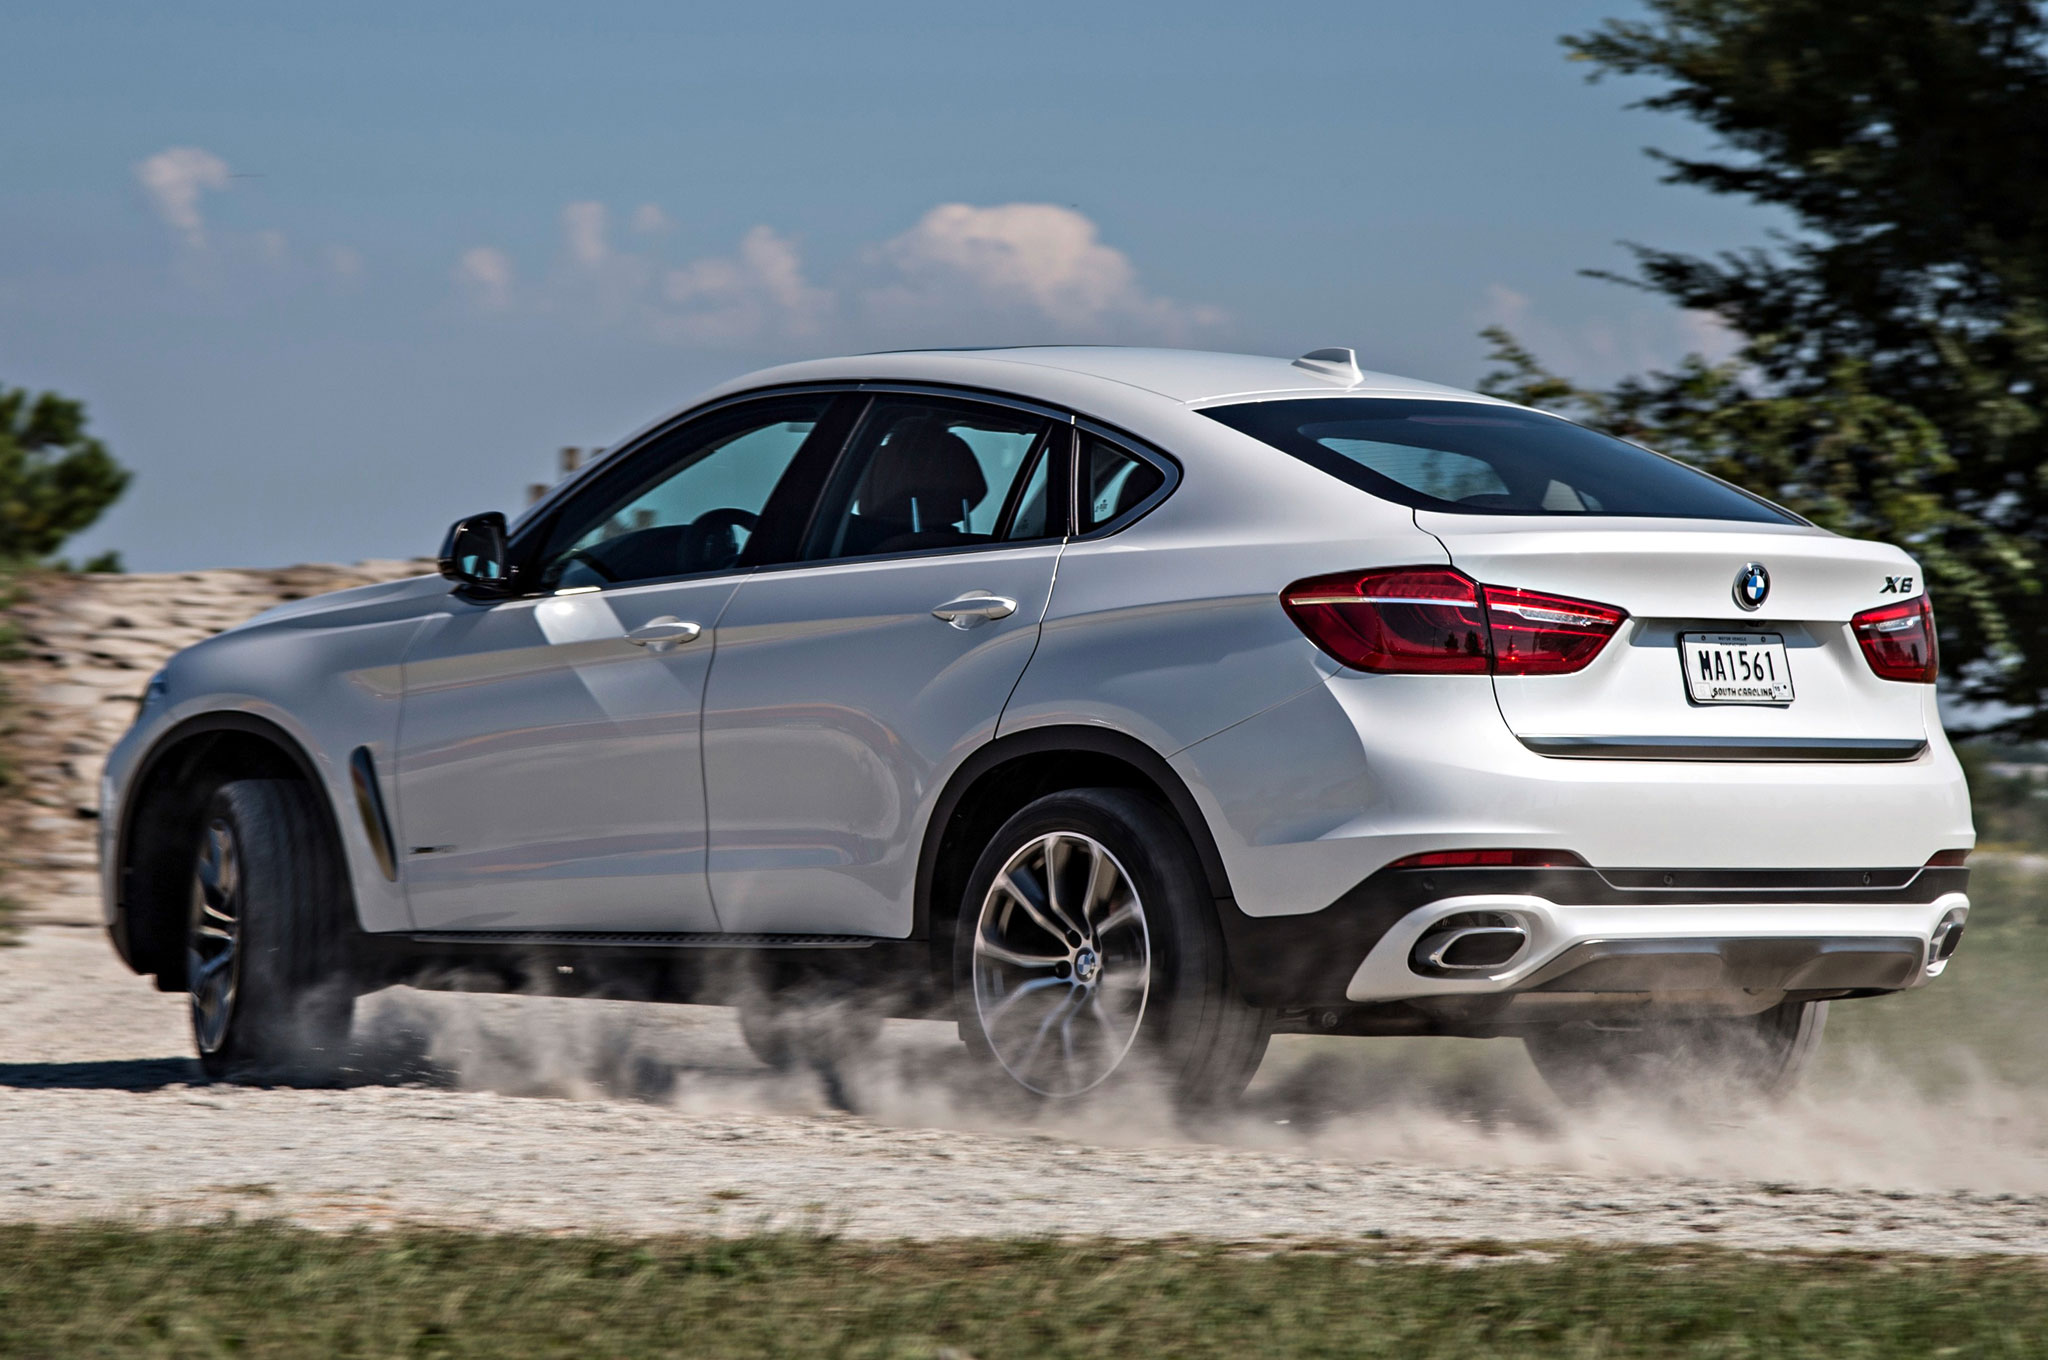 2015 Bmw X6 Xdrive 50i First Drive Amp Review